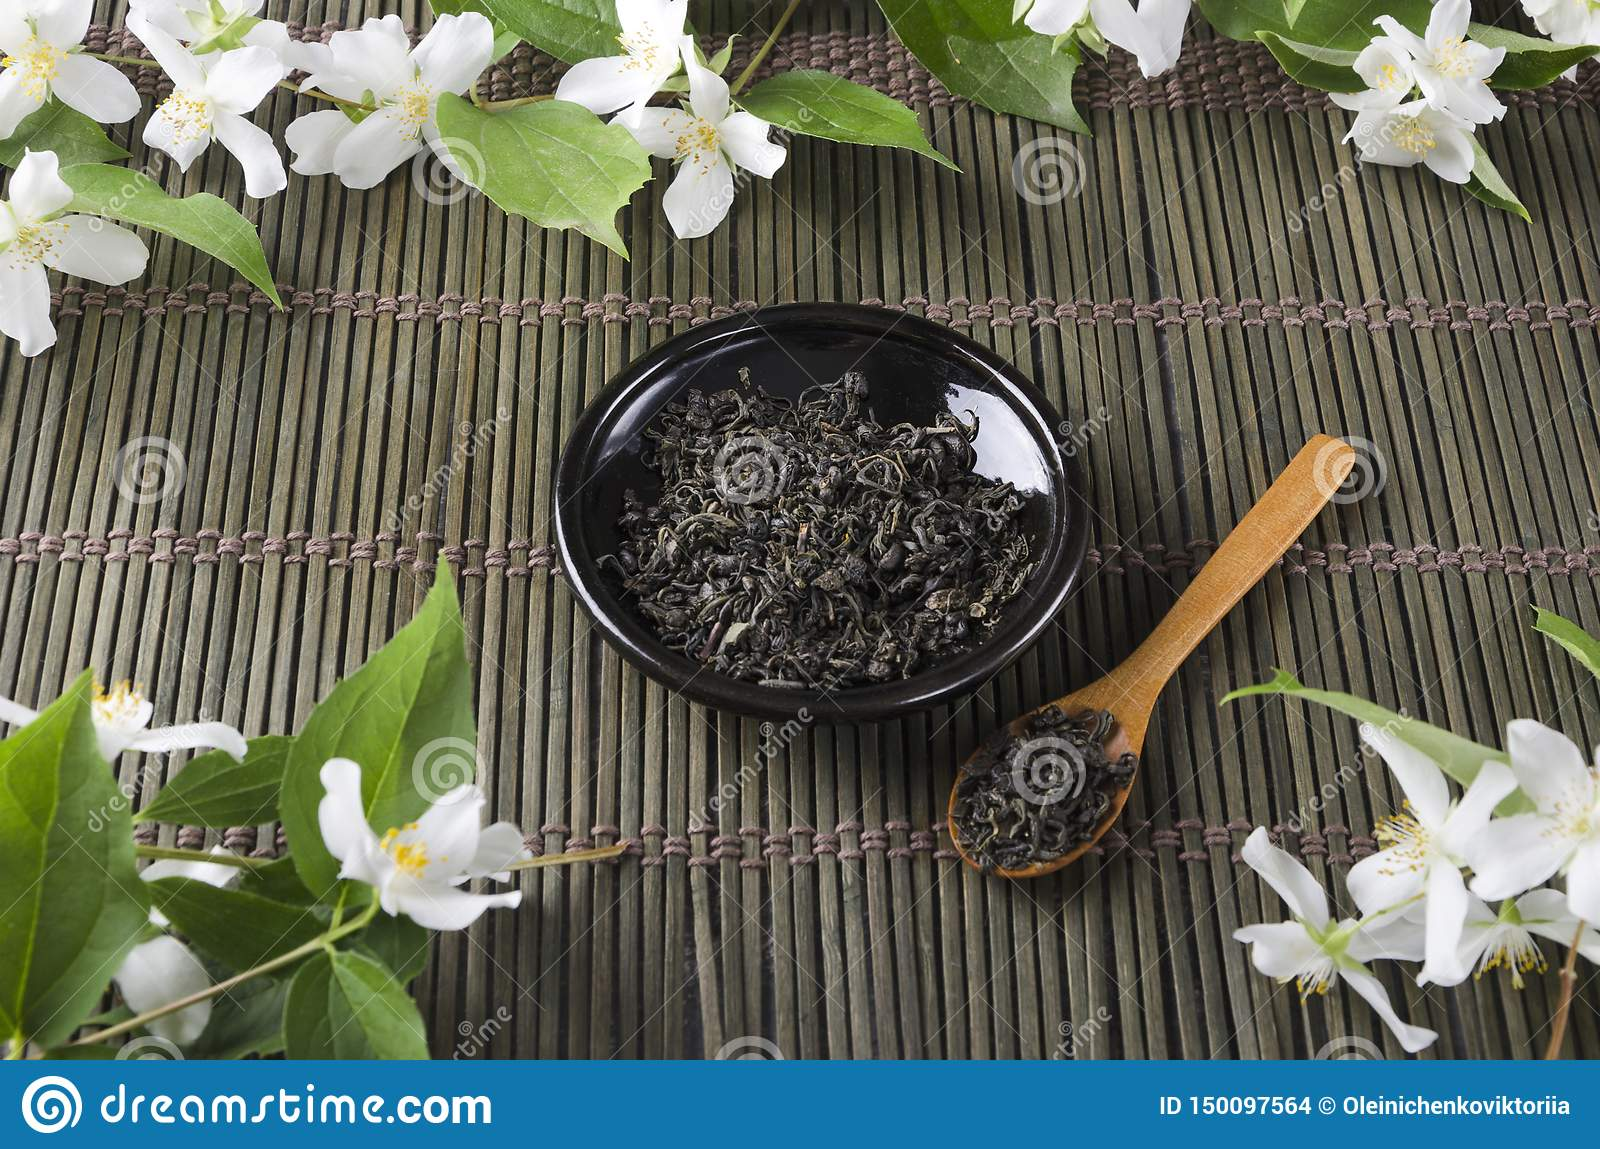 Dark saucer and green tea leaves on it, wooden spoon, fresh jasmine flowers on green serving mat